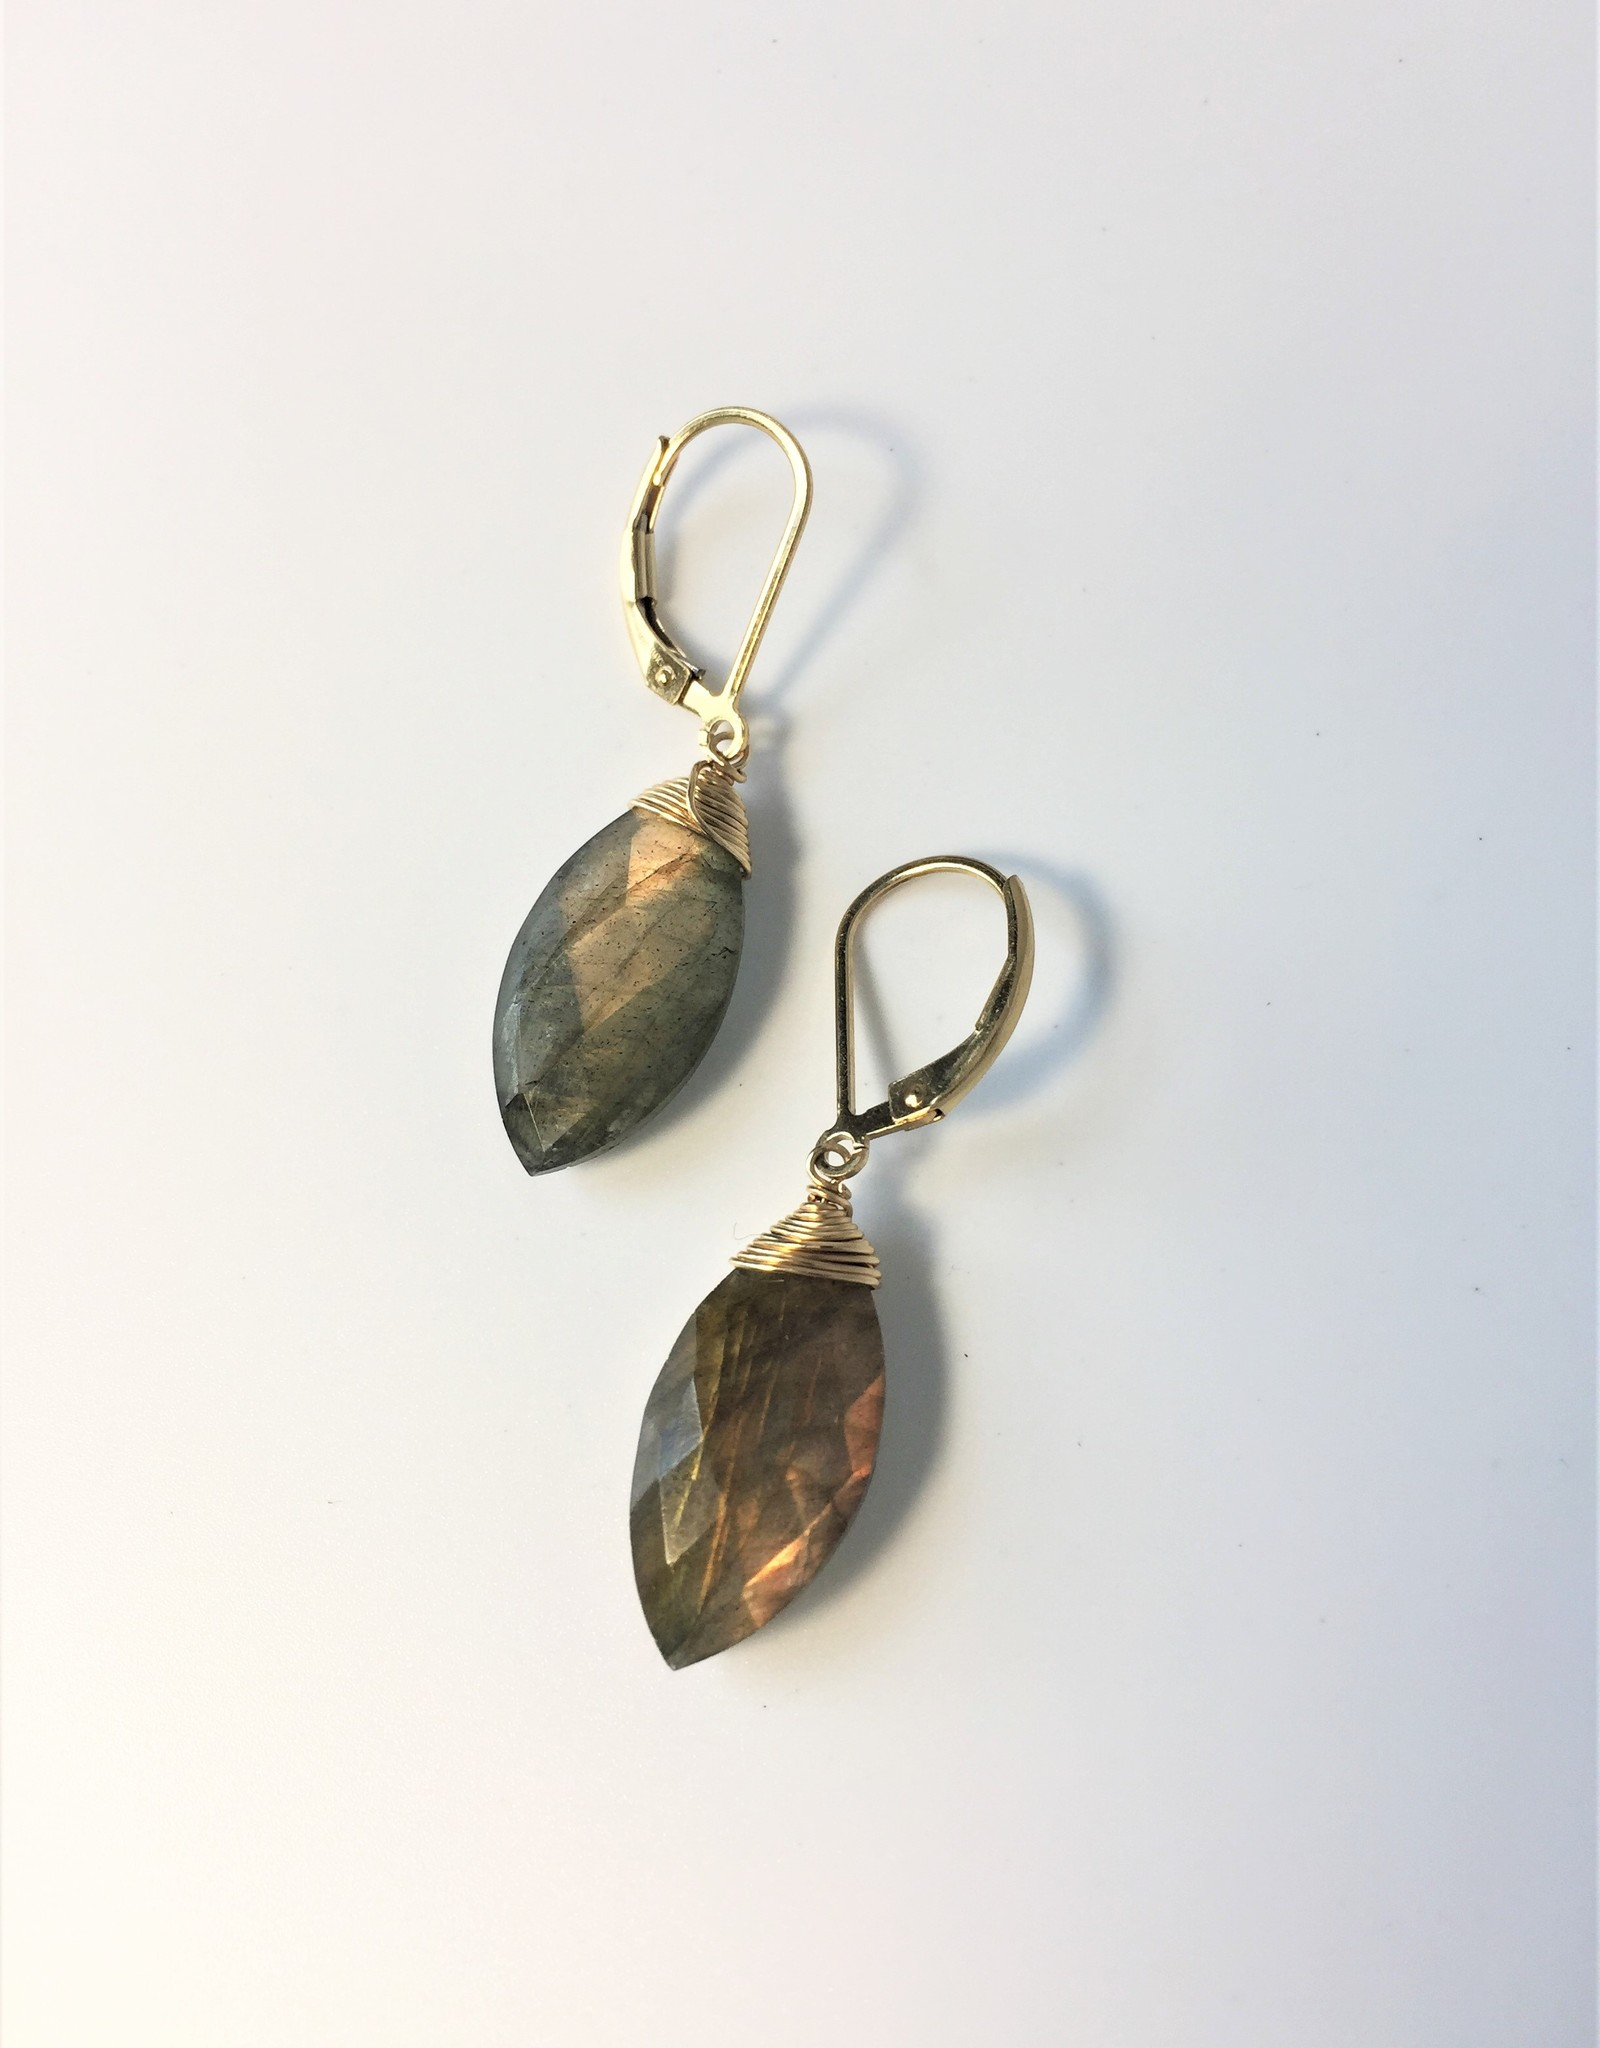 J&I 14kt Gold Wrapped Labradorite Earrings